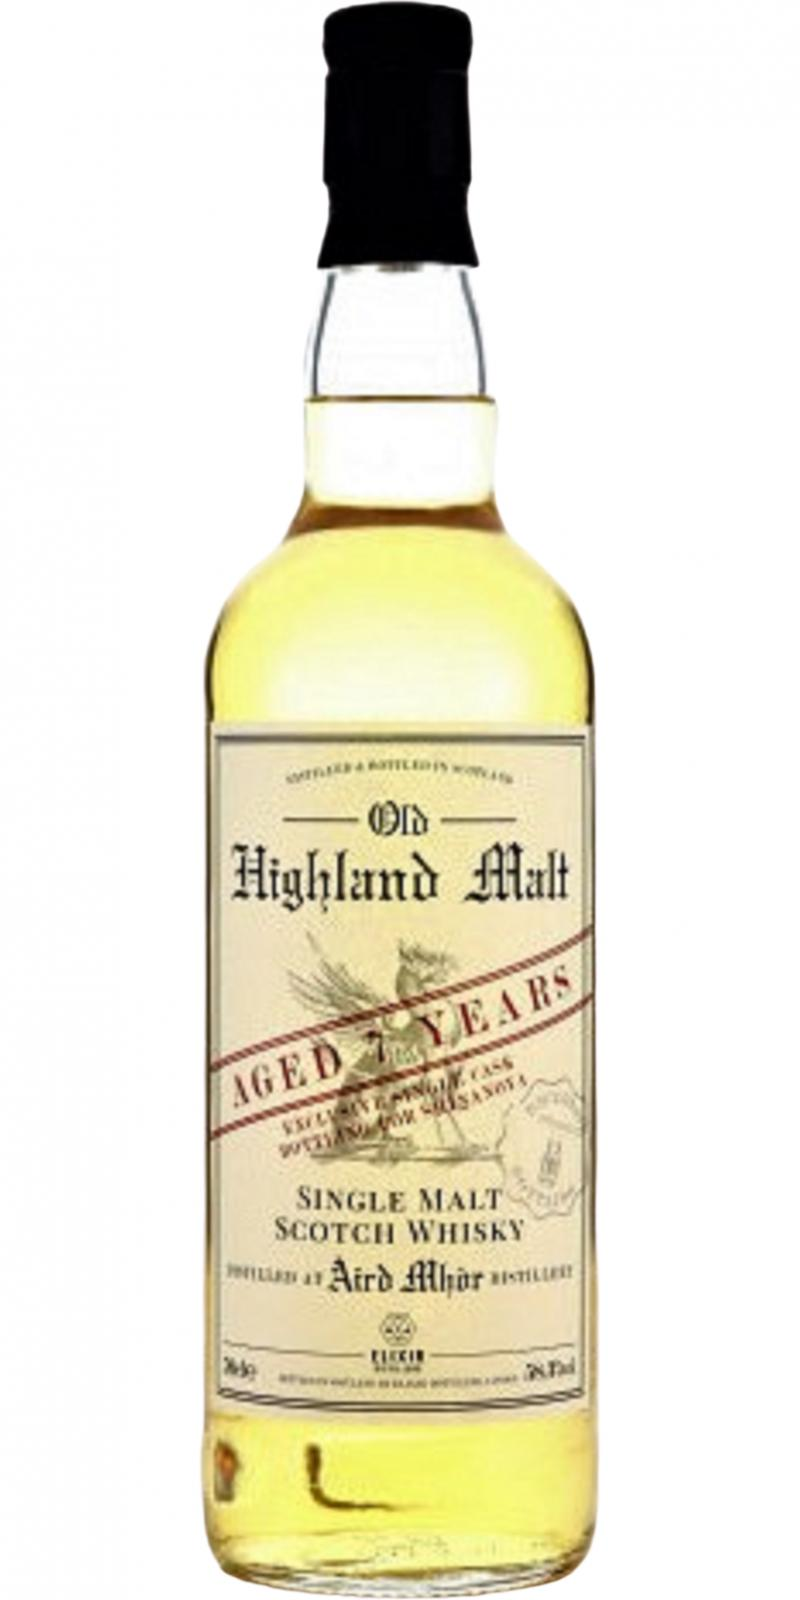 Aird Mhor 07-year-old ElD